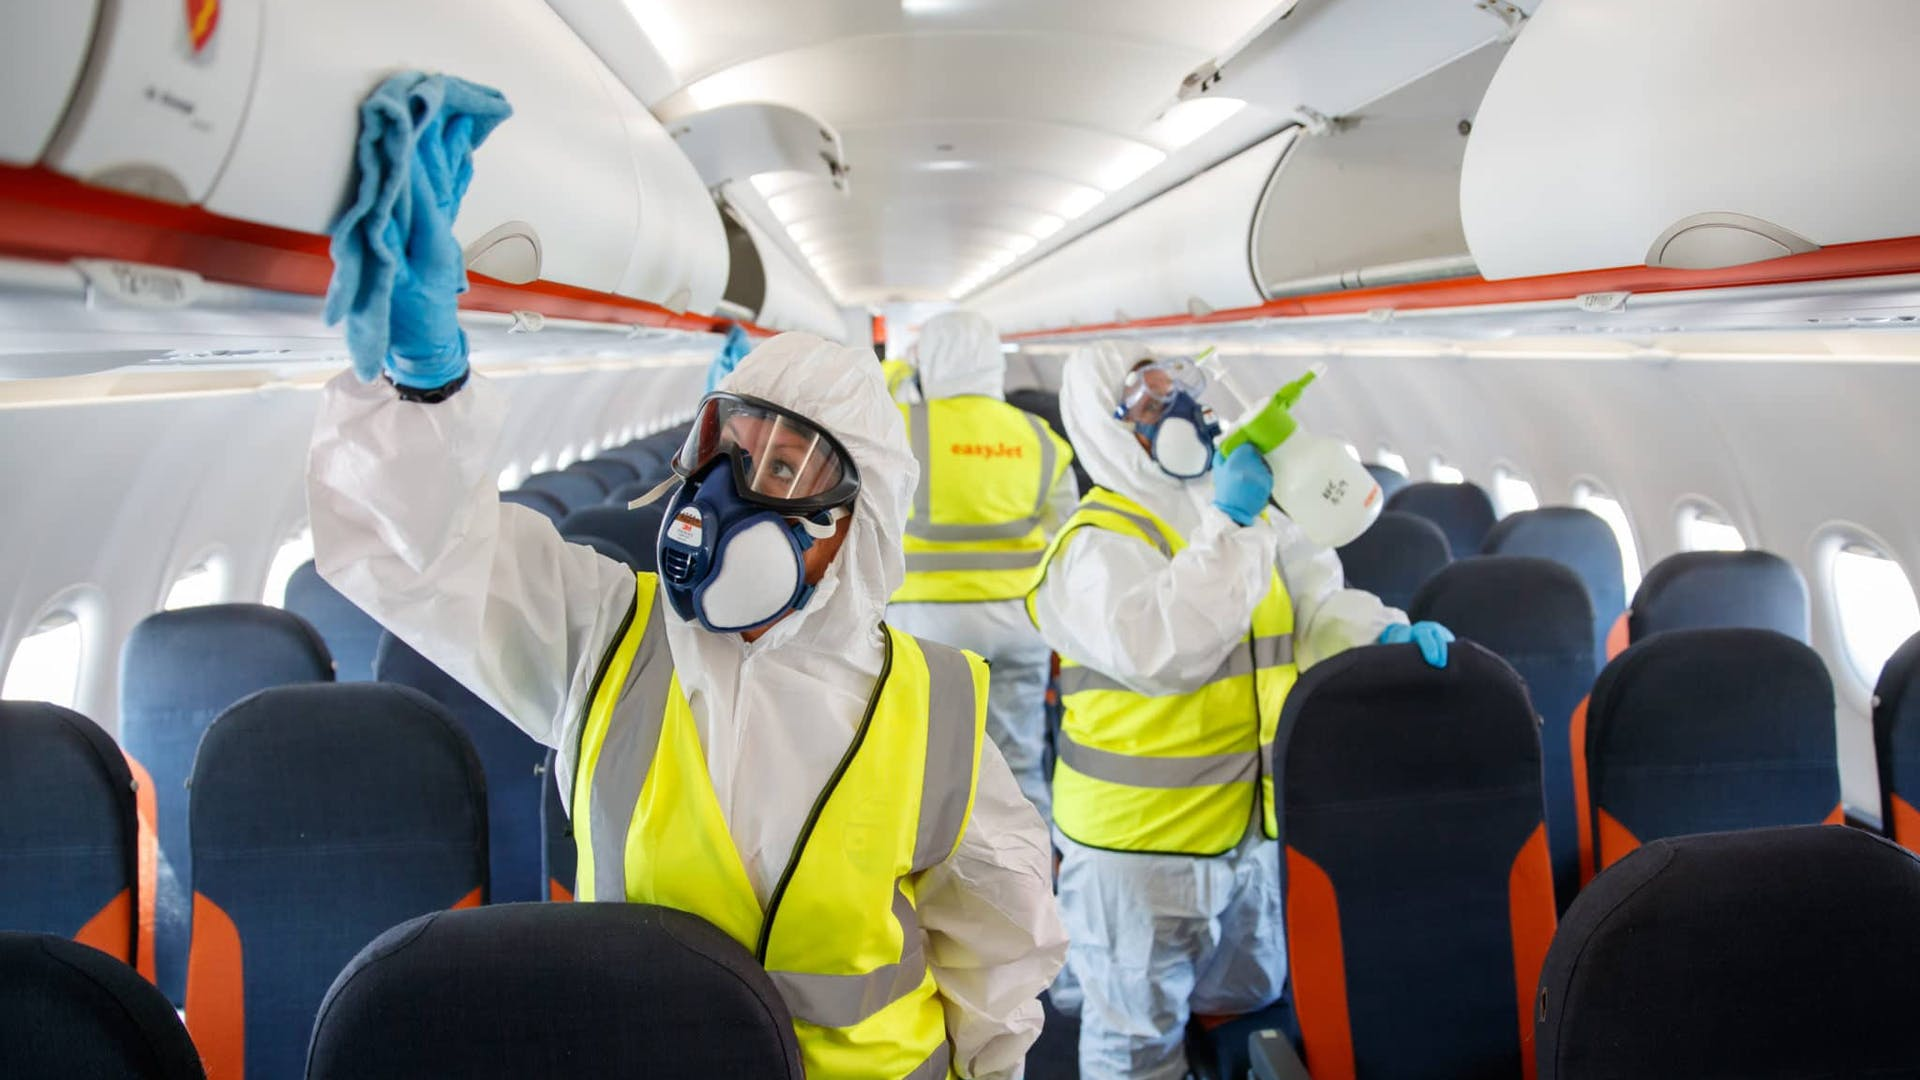 Cleaners disinfecting Easyjet plane